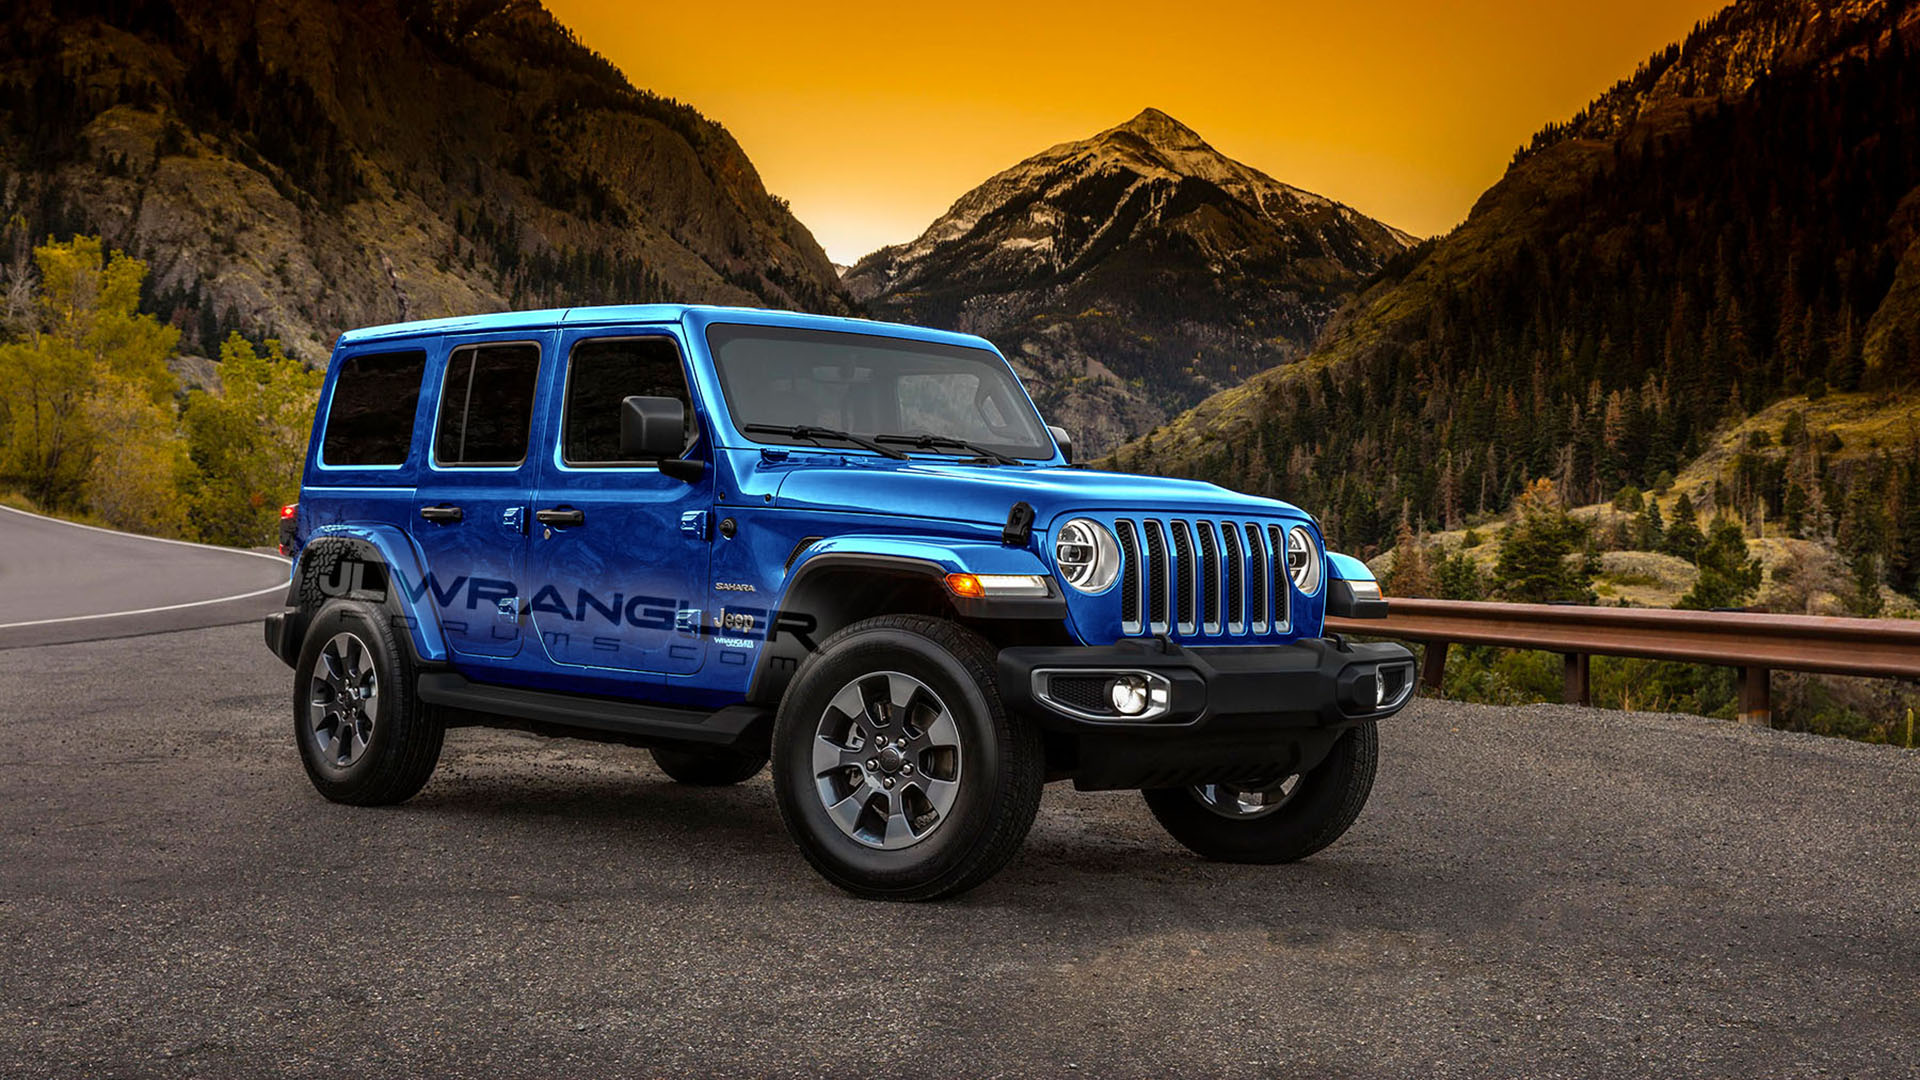 Wrangler Jl Ocean Paint Color